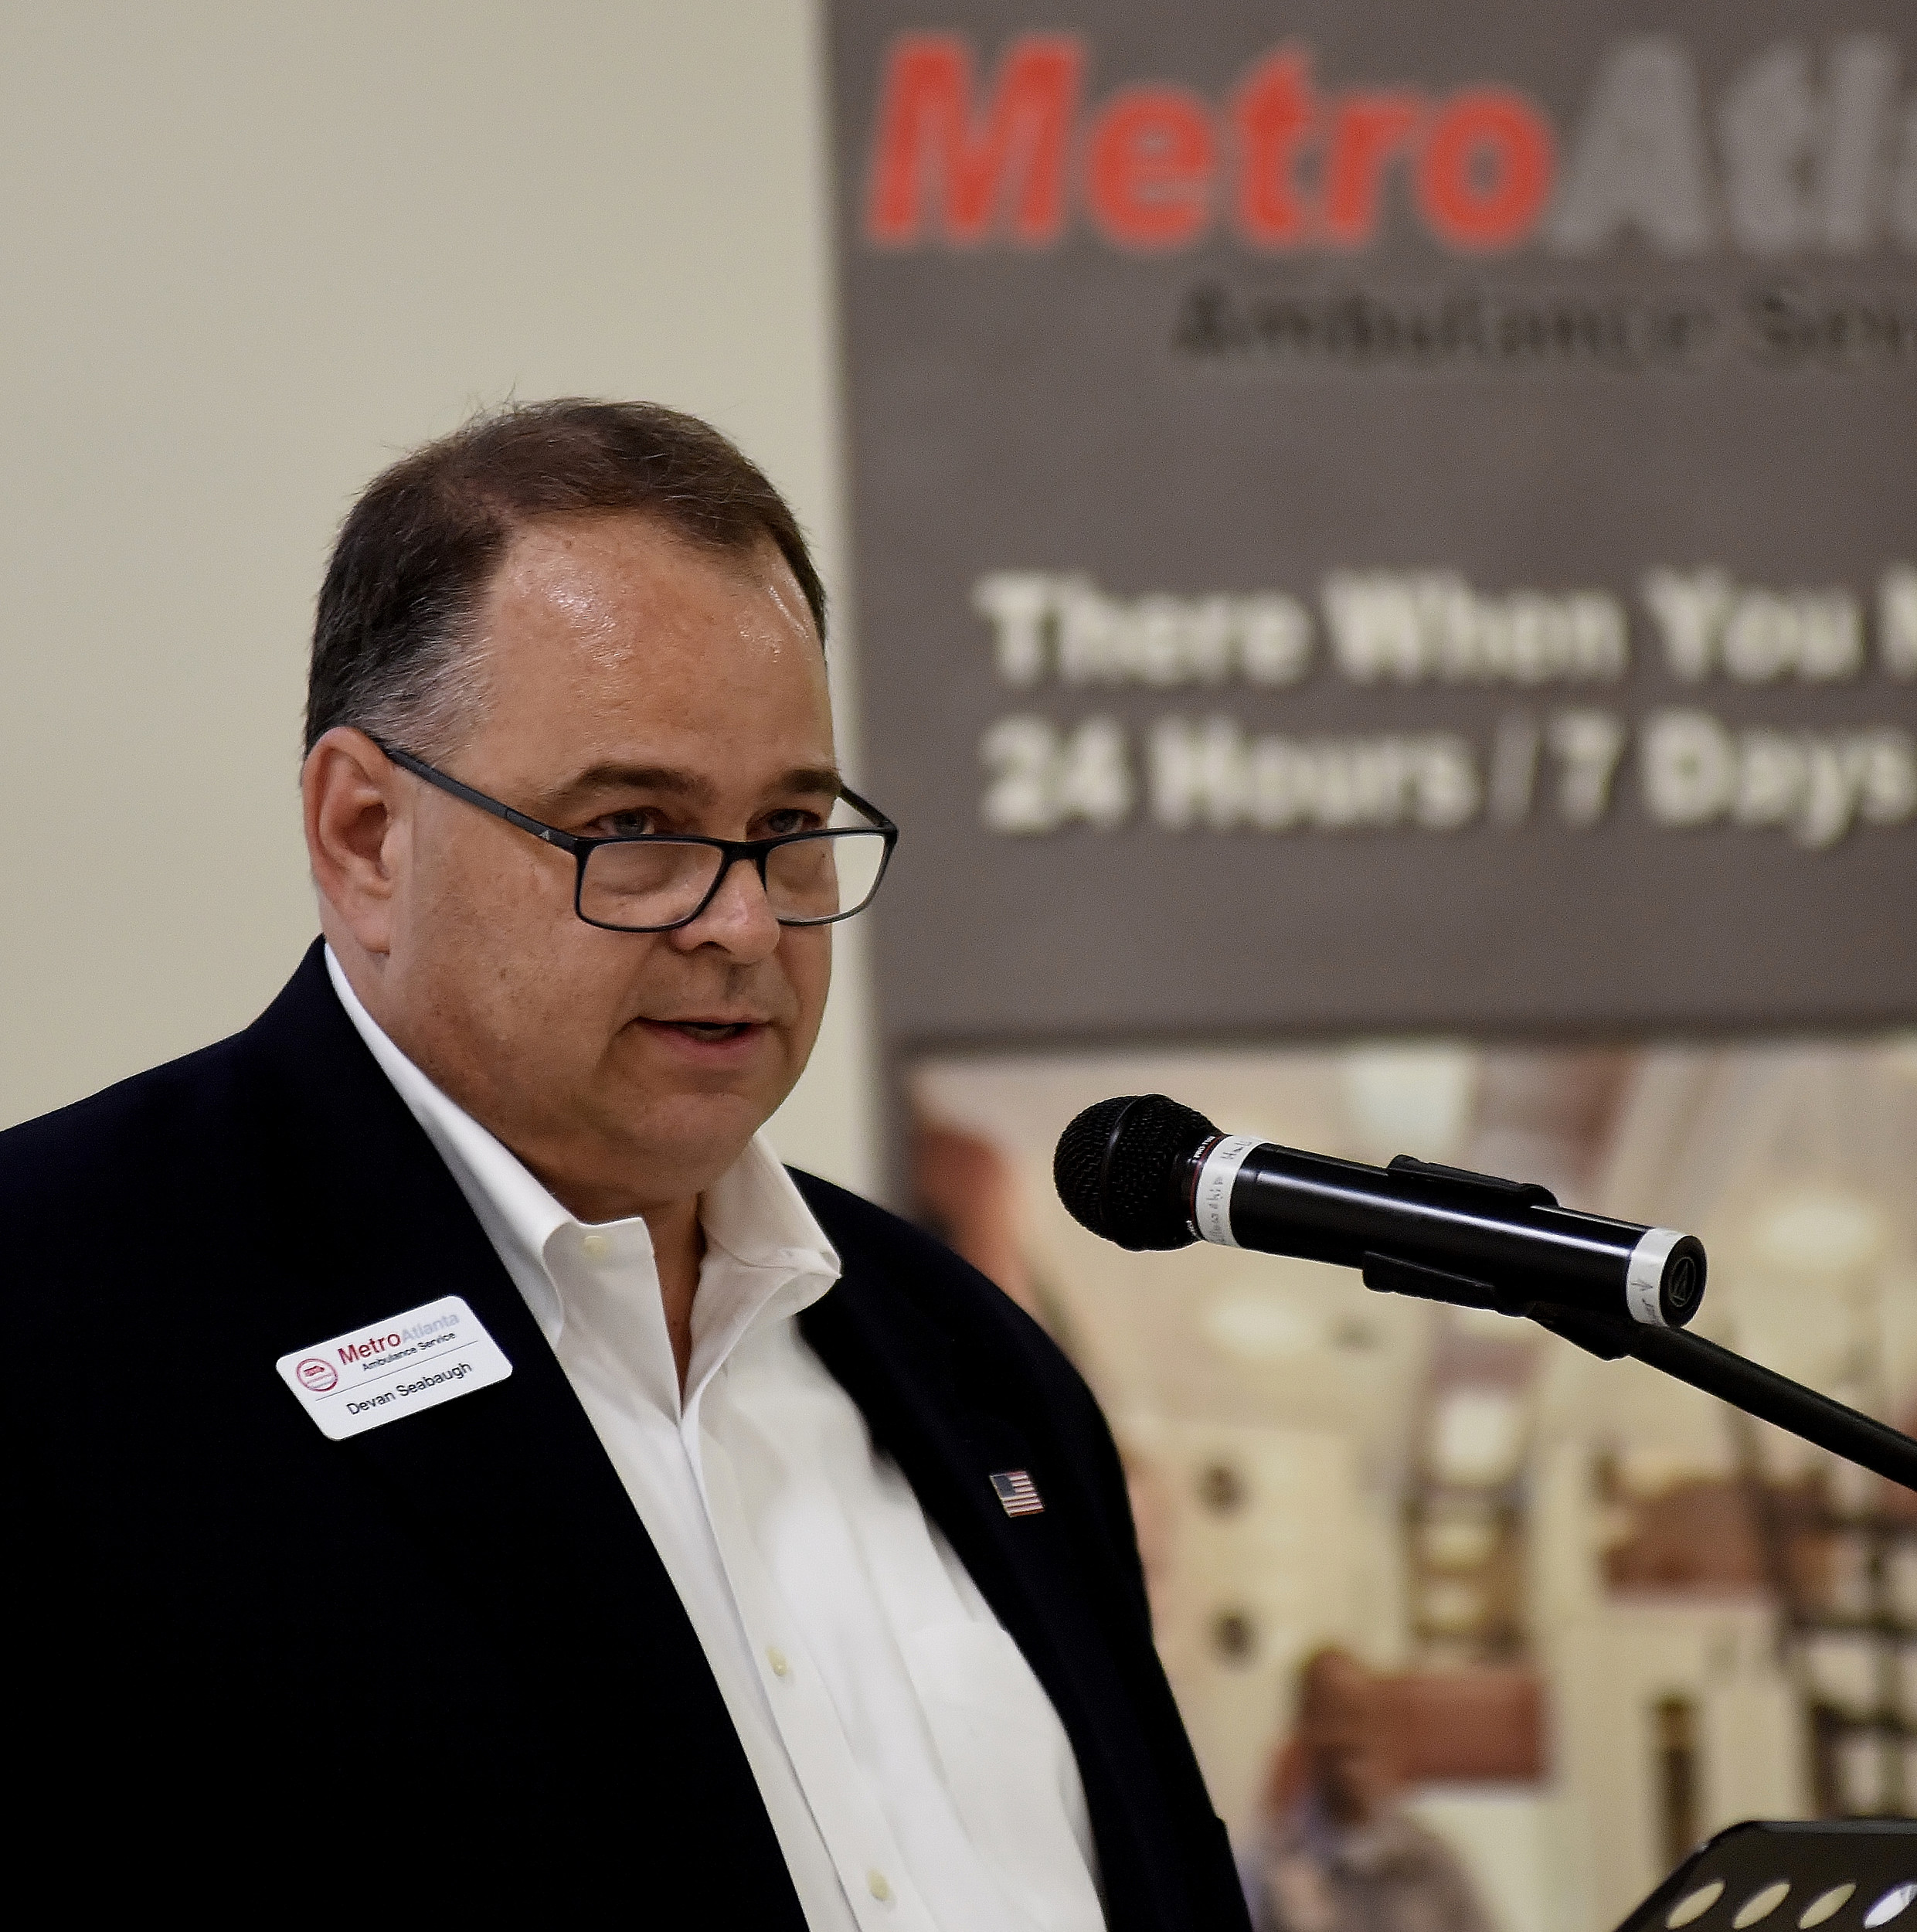 MetroAtlanta Ambulance Service Vice President of Administration Devan Seabaugh spoke at Thursday's Cartersville-Bartow County Chamber of Commerce event in Adairsville.